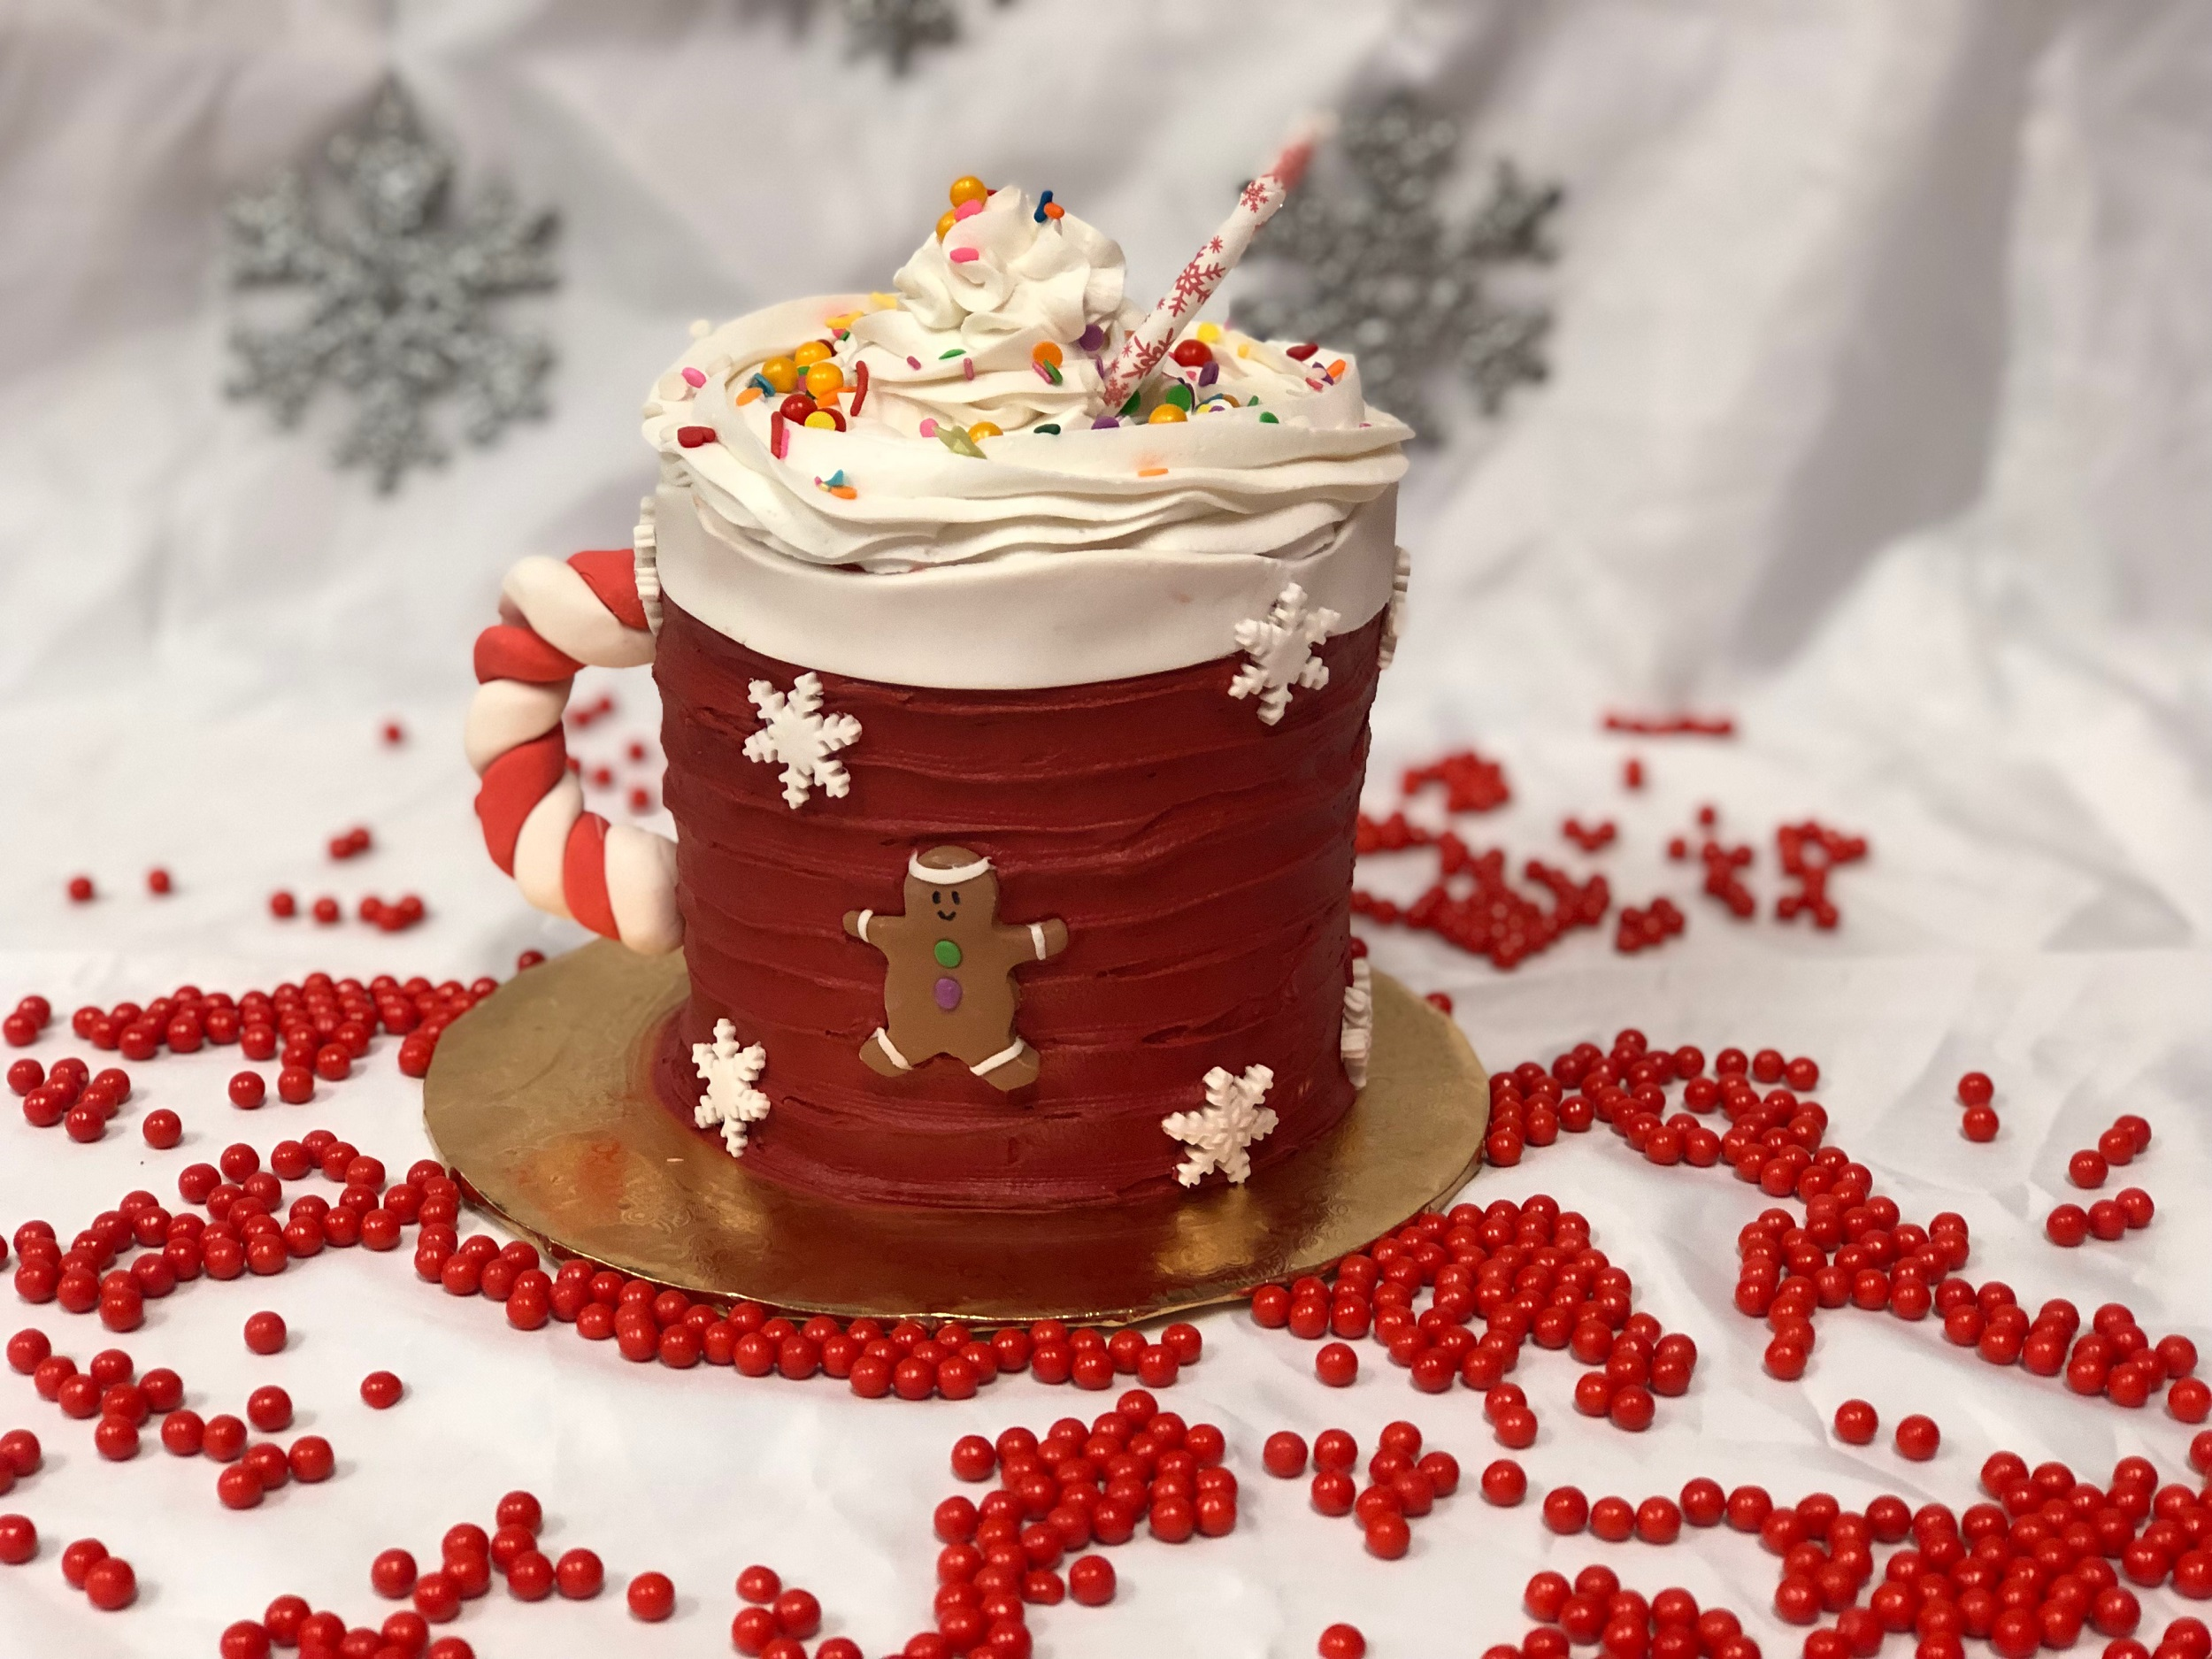 Family Day: Hot Chocolate Cake